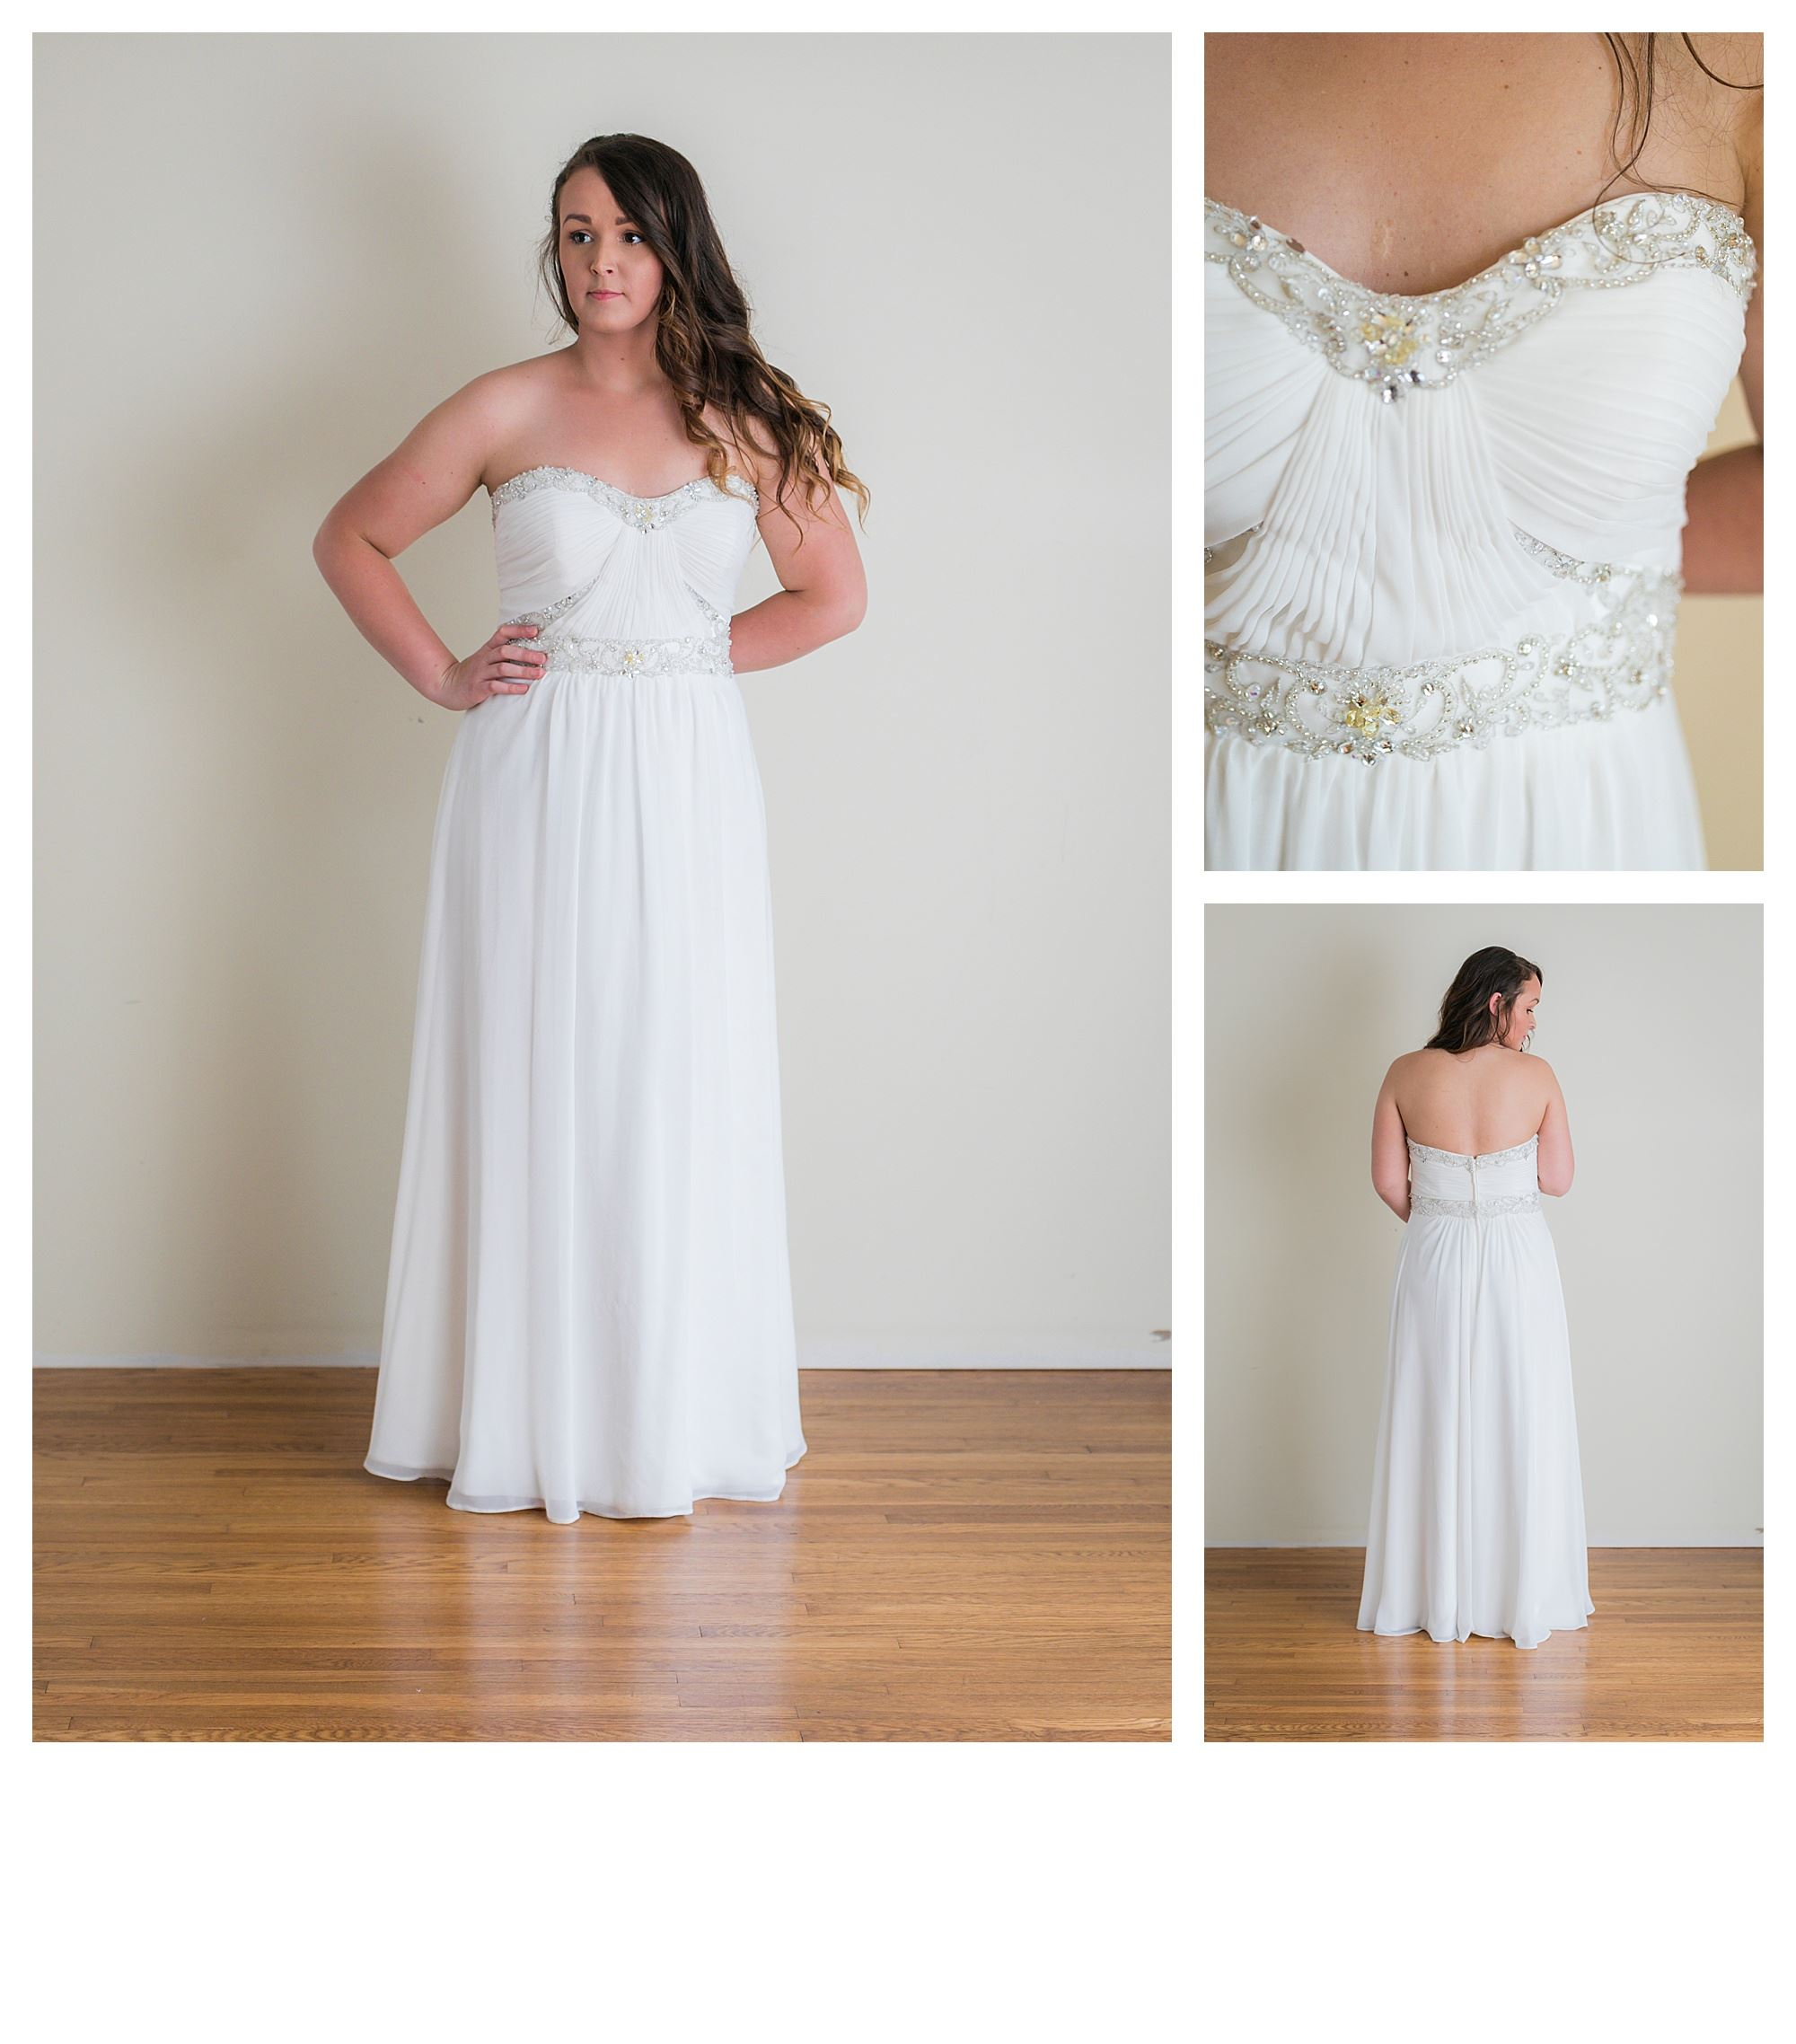 Shira - Size 16 - Ivory - Originally priced $999 - Sample box price $699